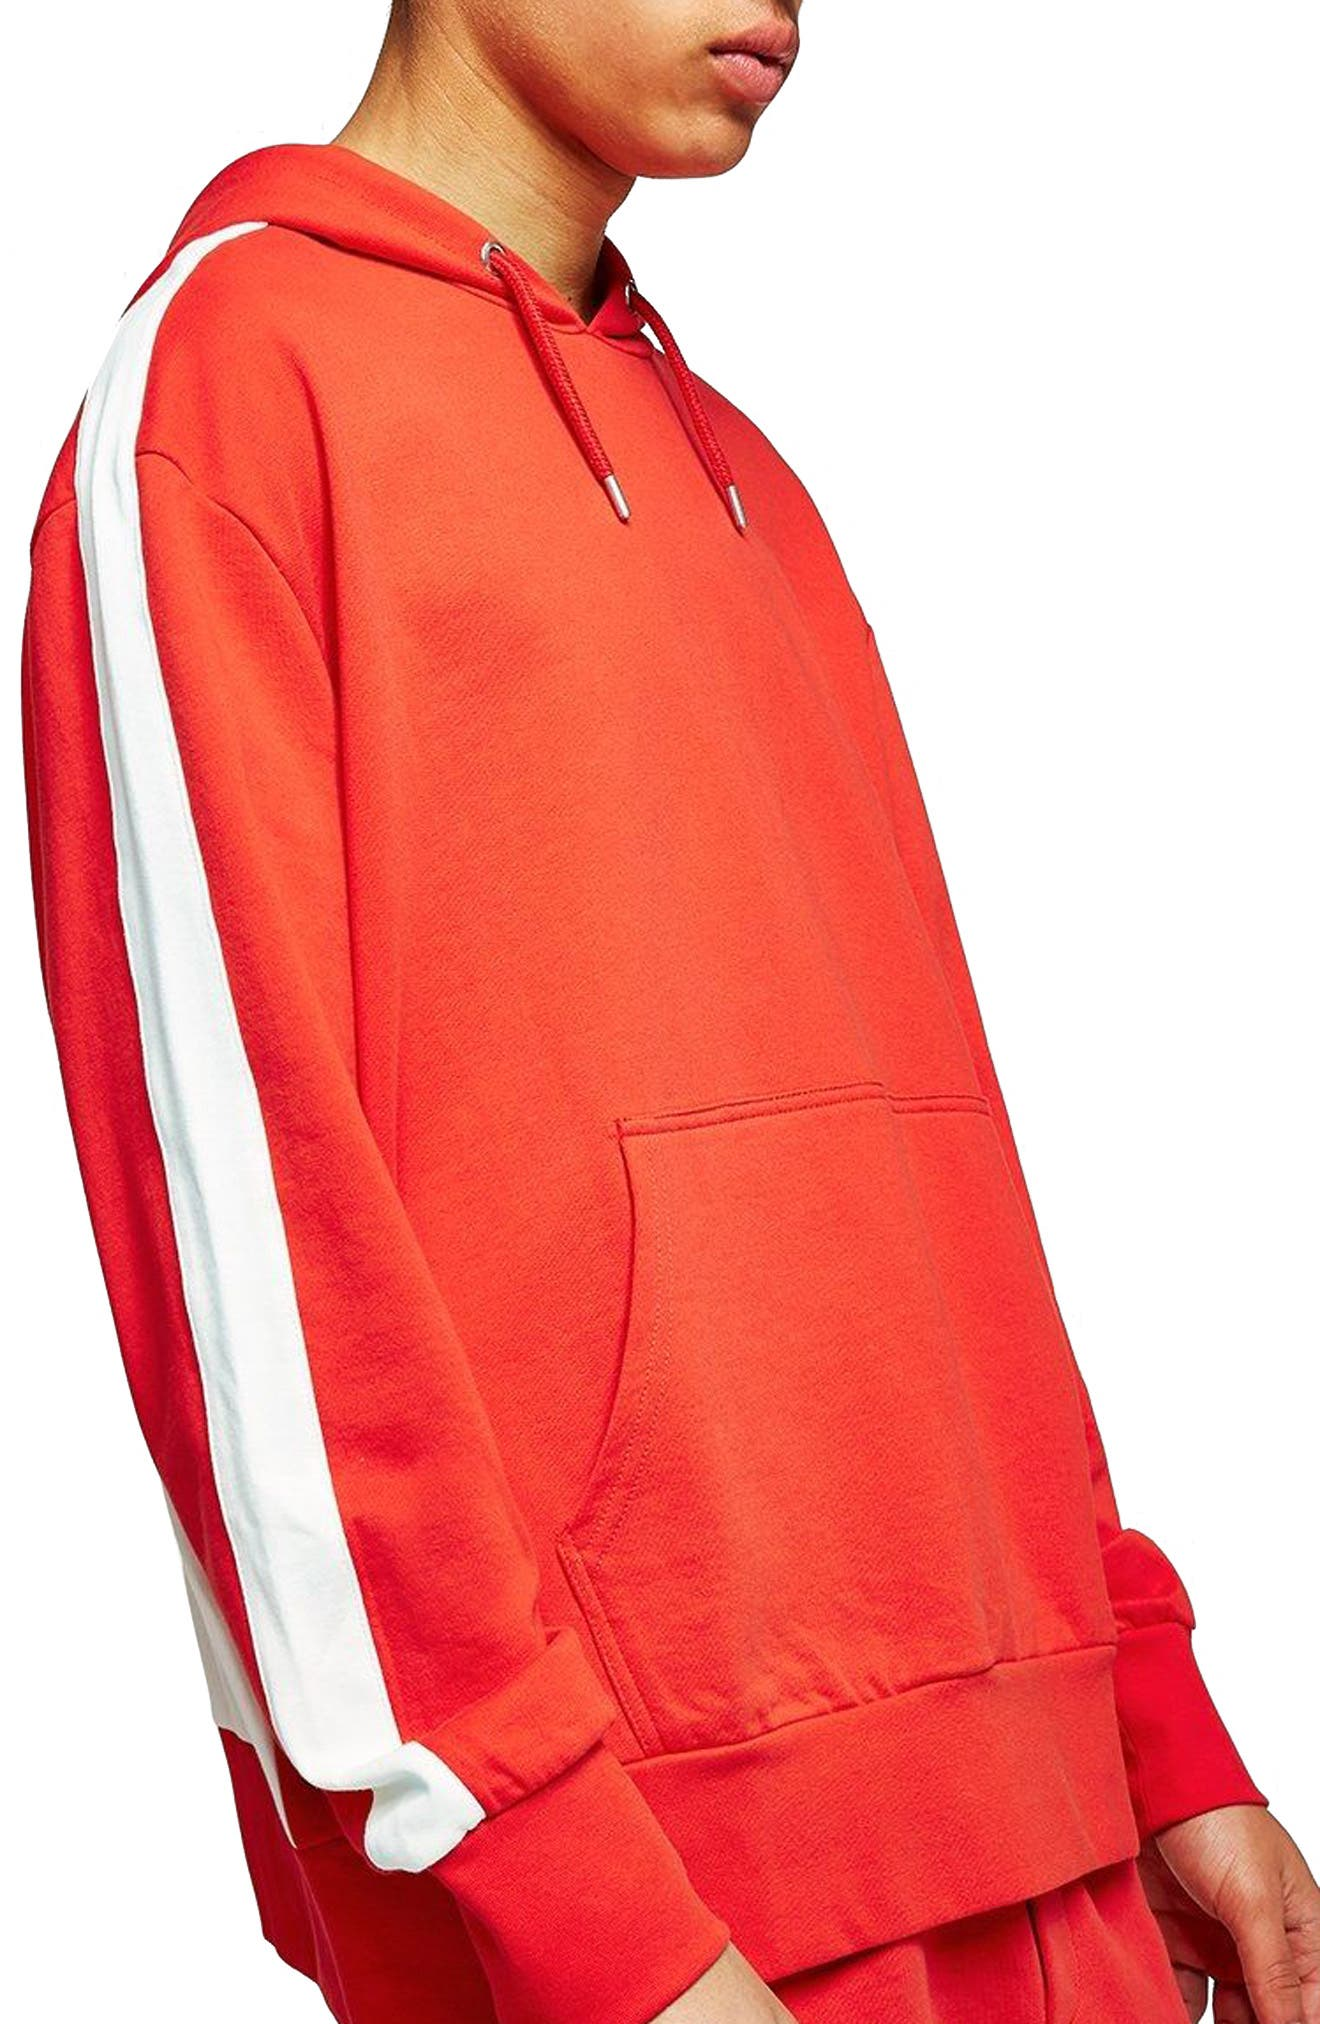 Panel Sleeve Hoodie,                             Main thumbnail 1, color,                             Red Multi